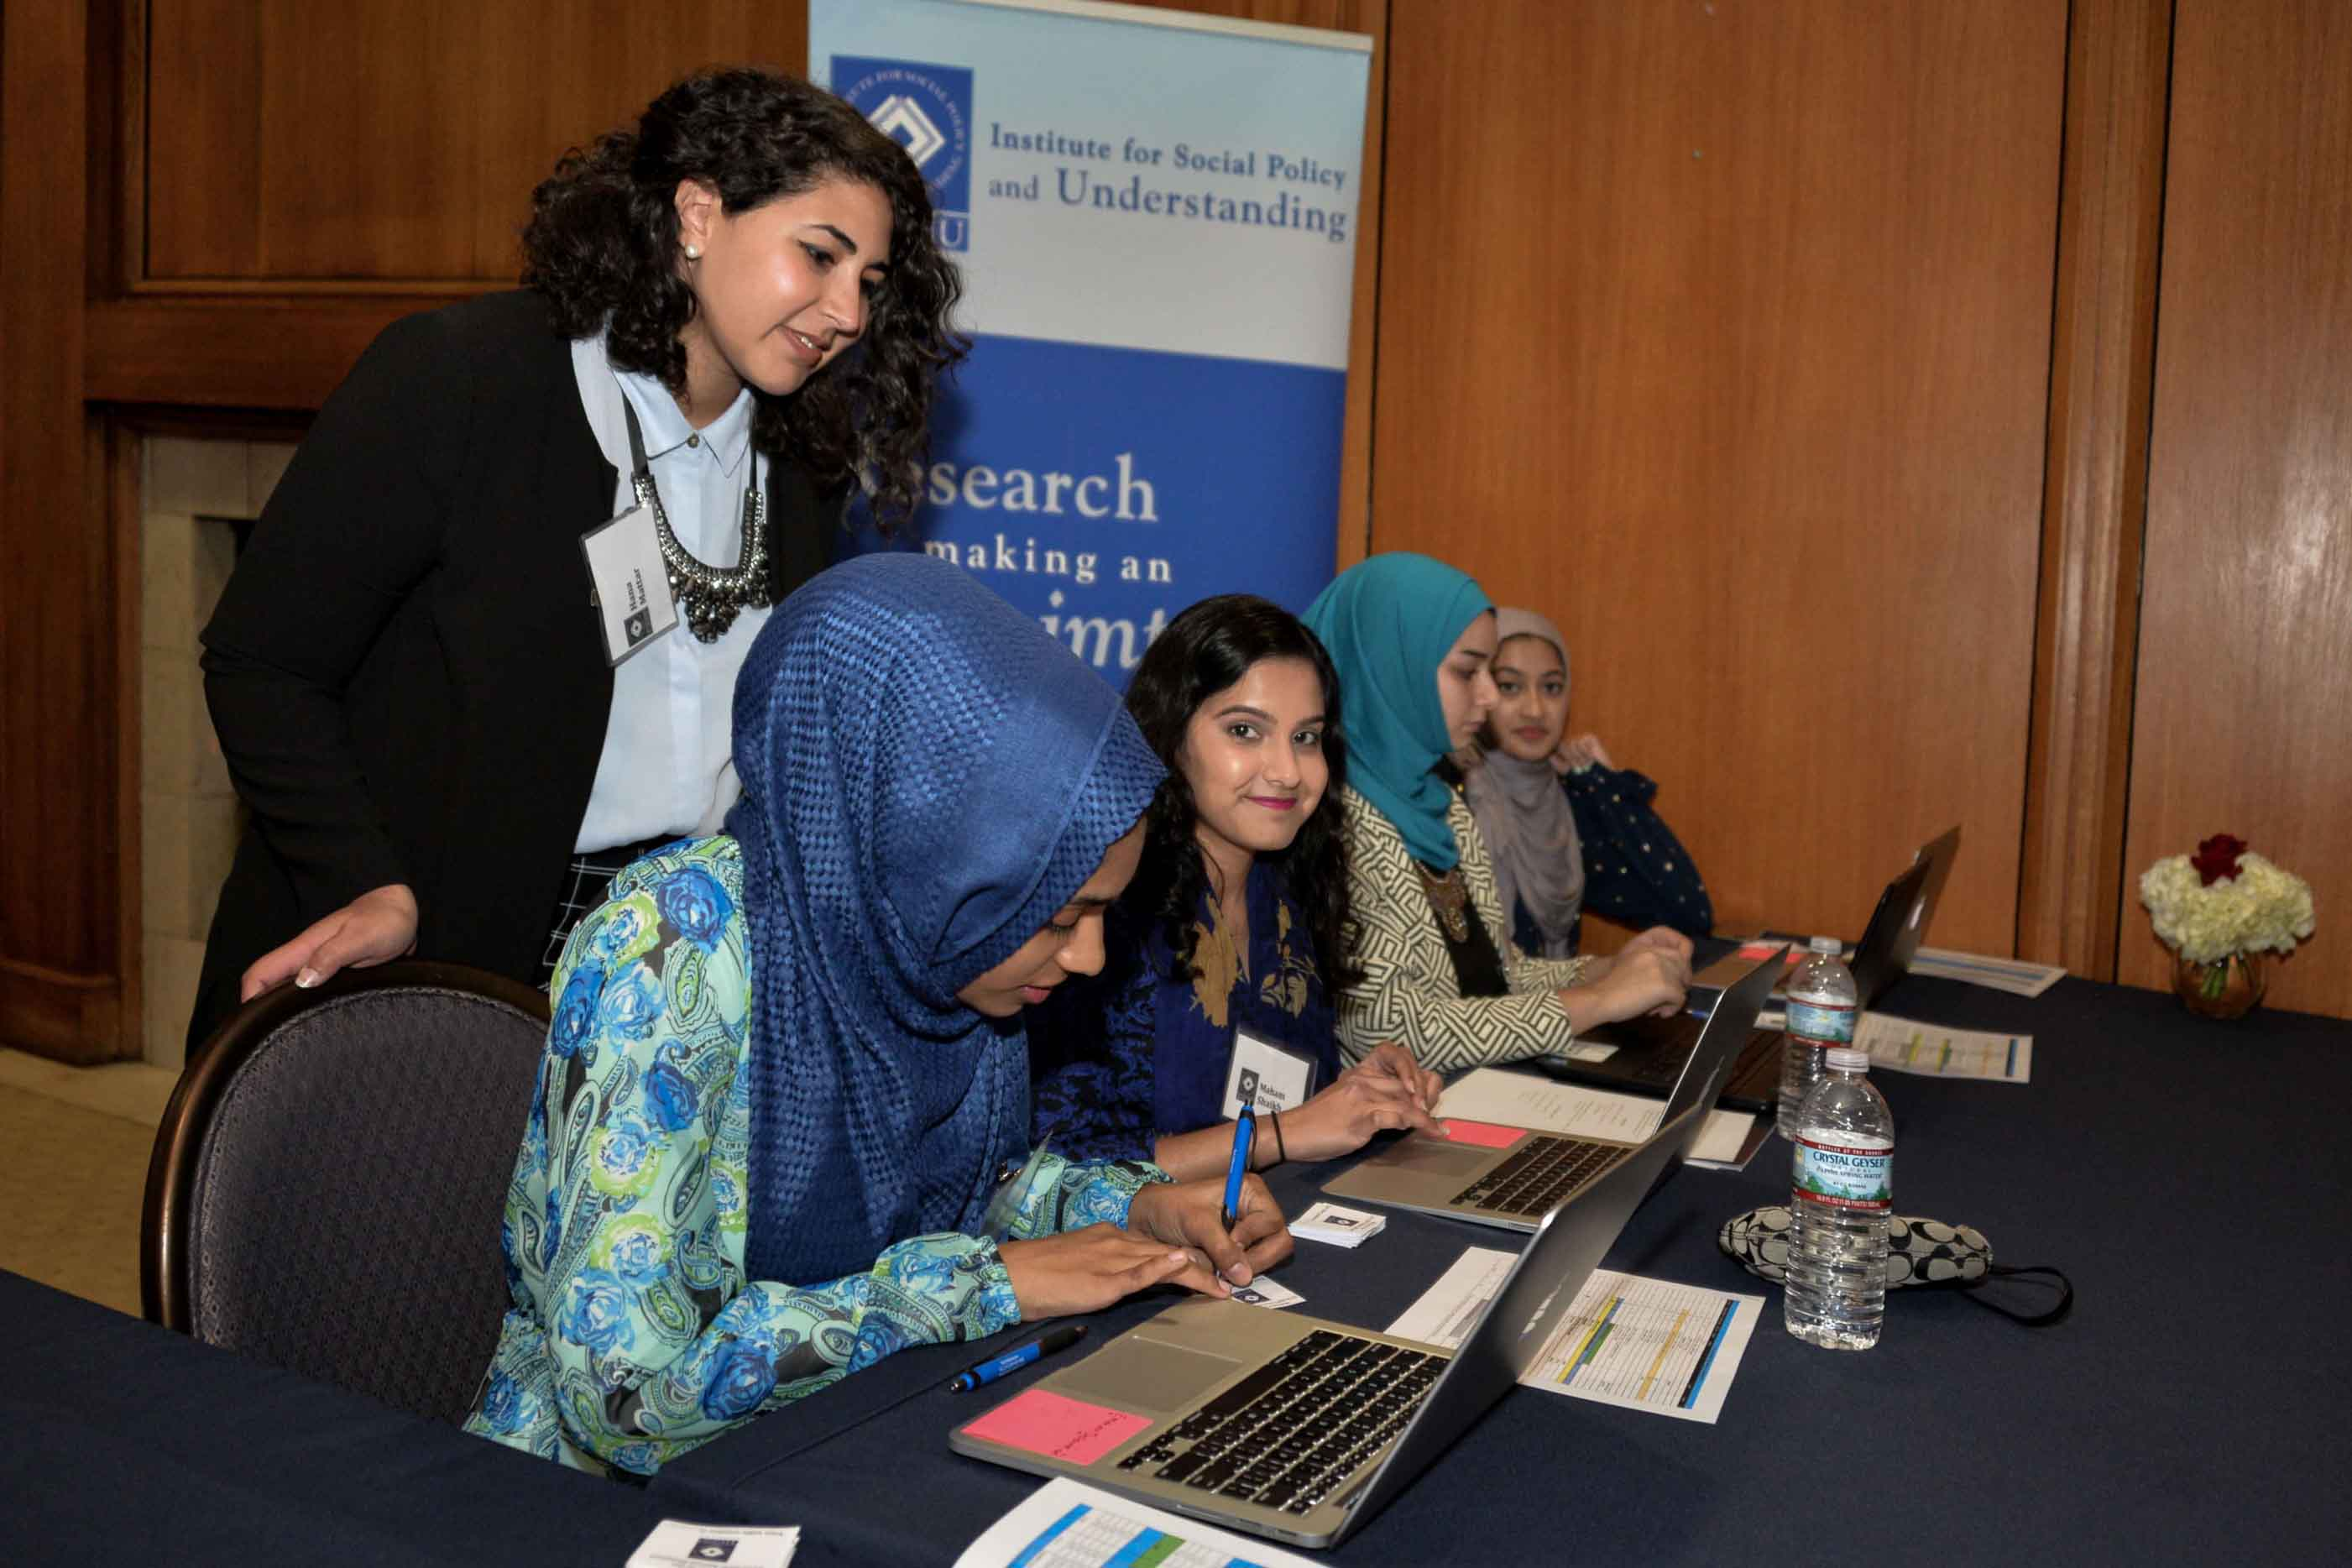 ISPU volunteers working diligently at an event check-in table